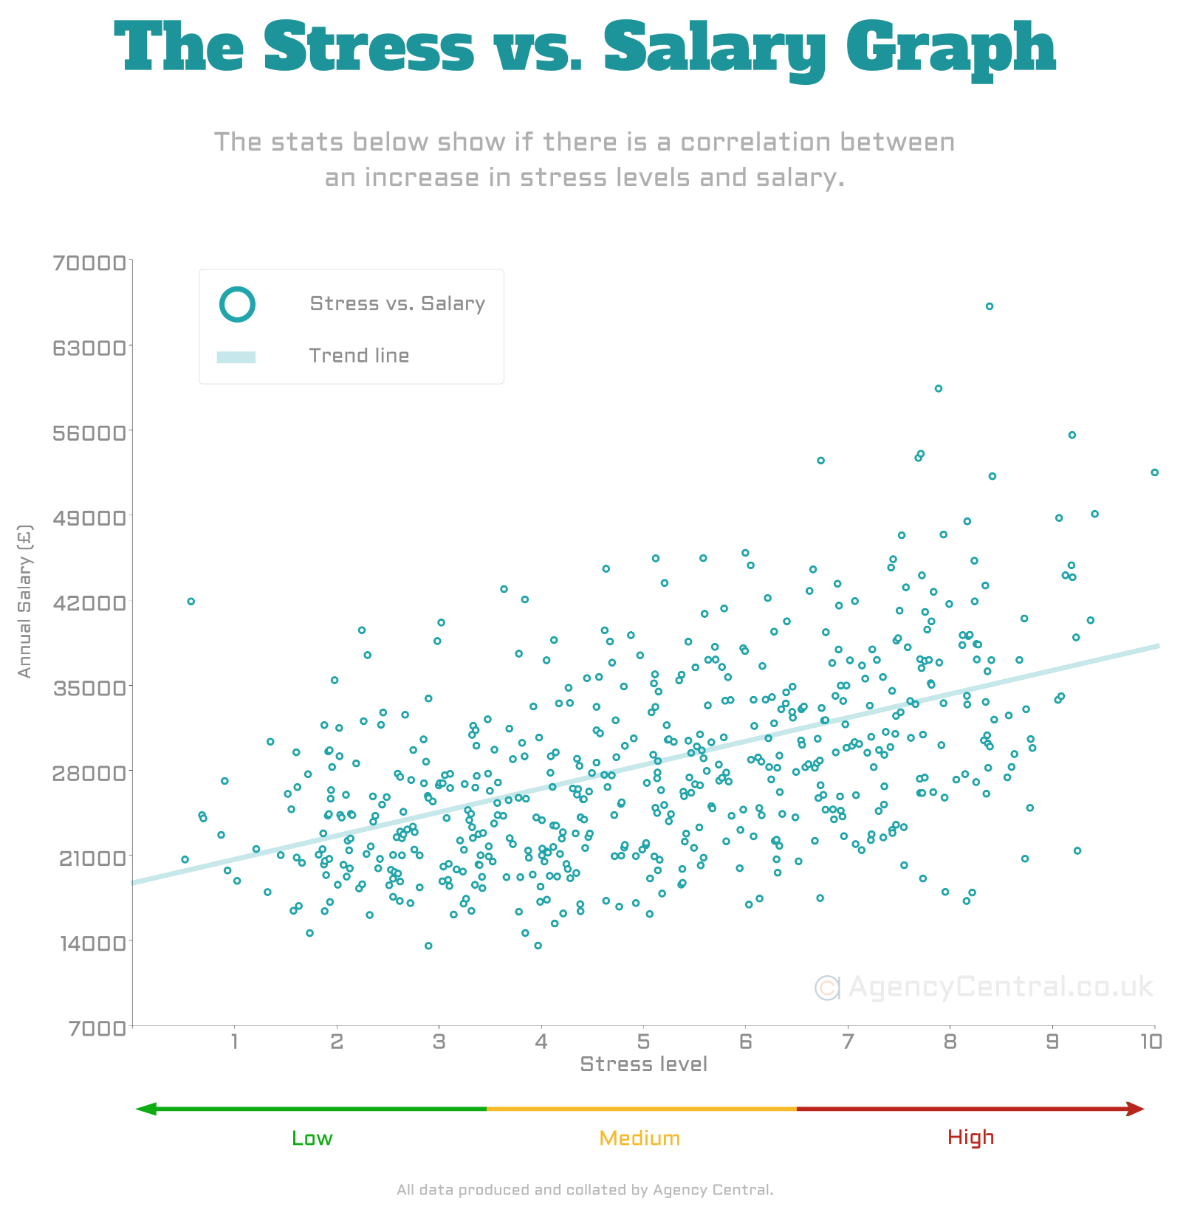 Revealed: Stress, Salary, and Their Relationship